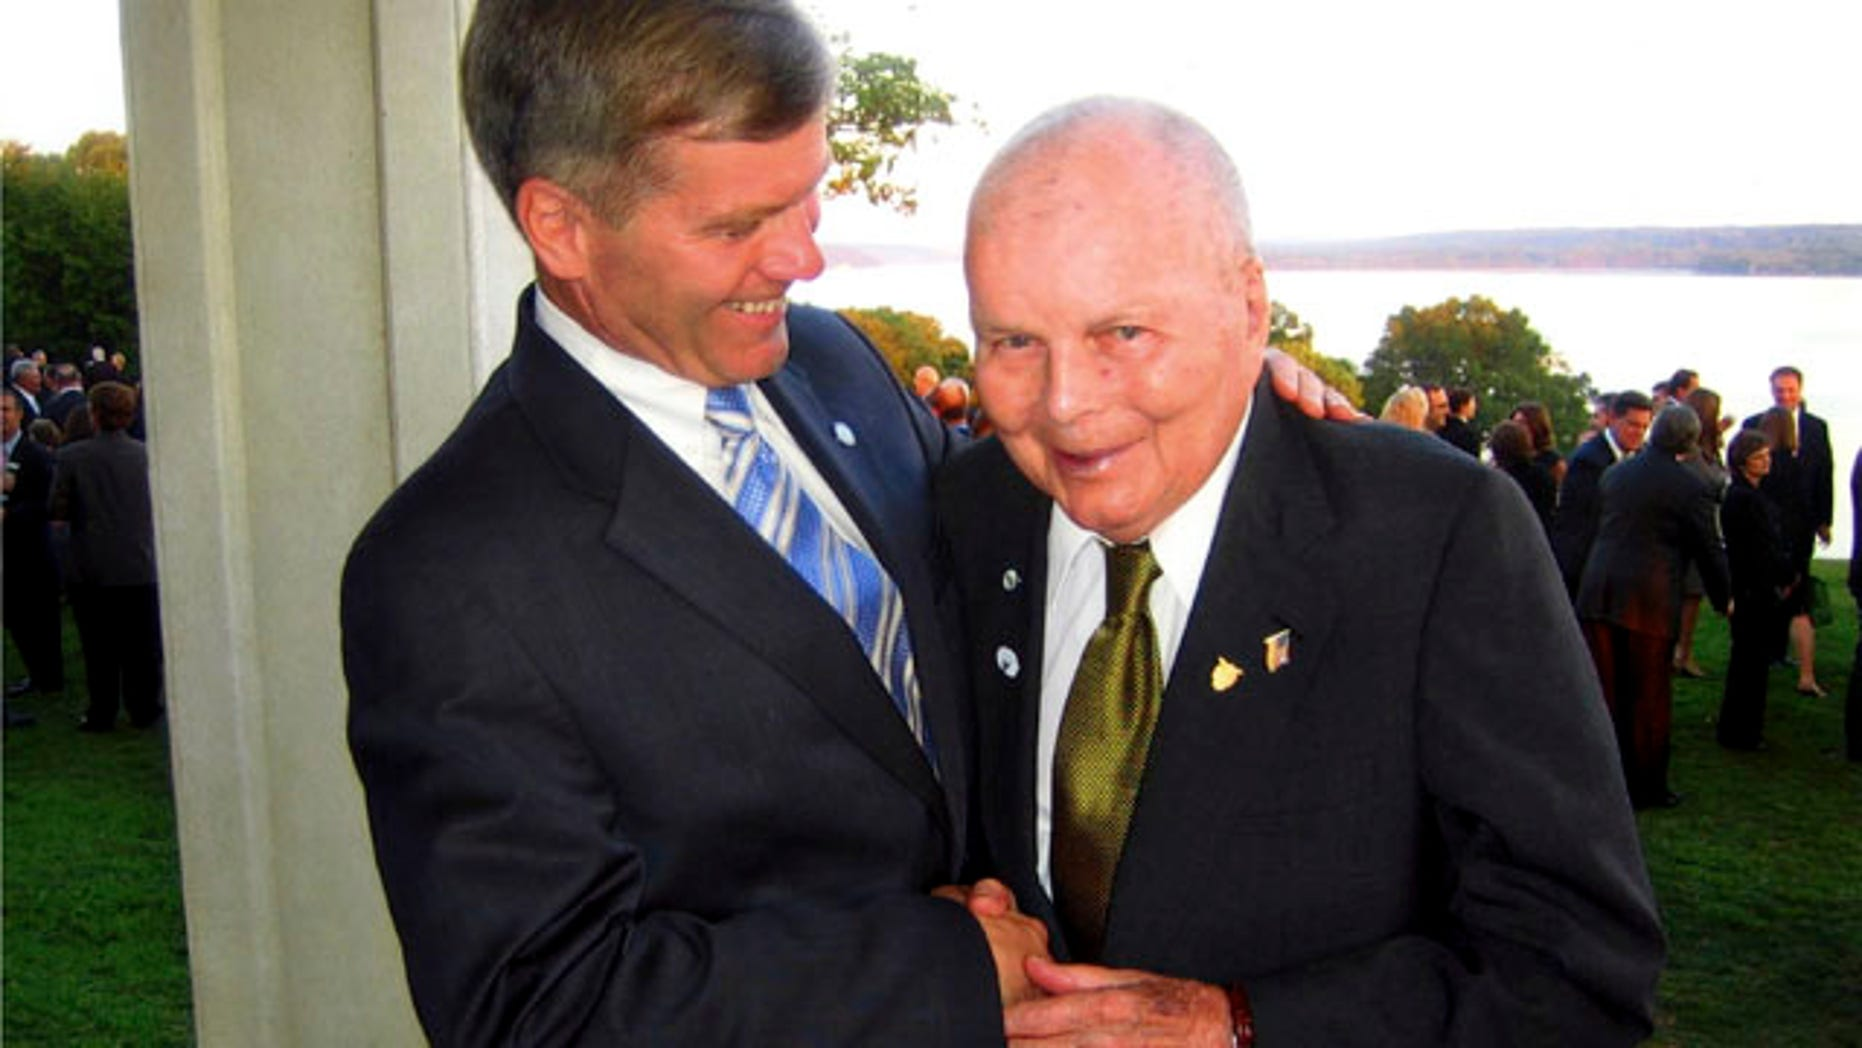 This 2006 file photo provided by the office of the Governor of Virginia, shows Virginia Gov. Bob McDonnell, left, with his father, John, in Mt. Vernon, Va.